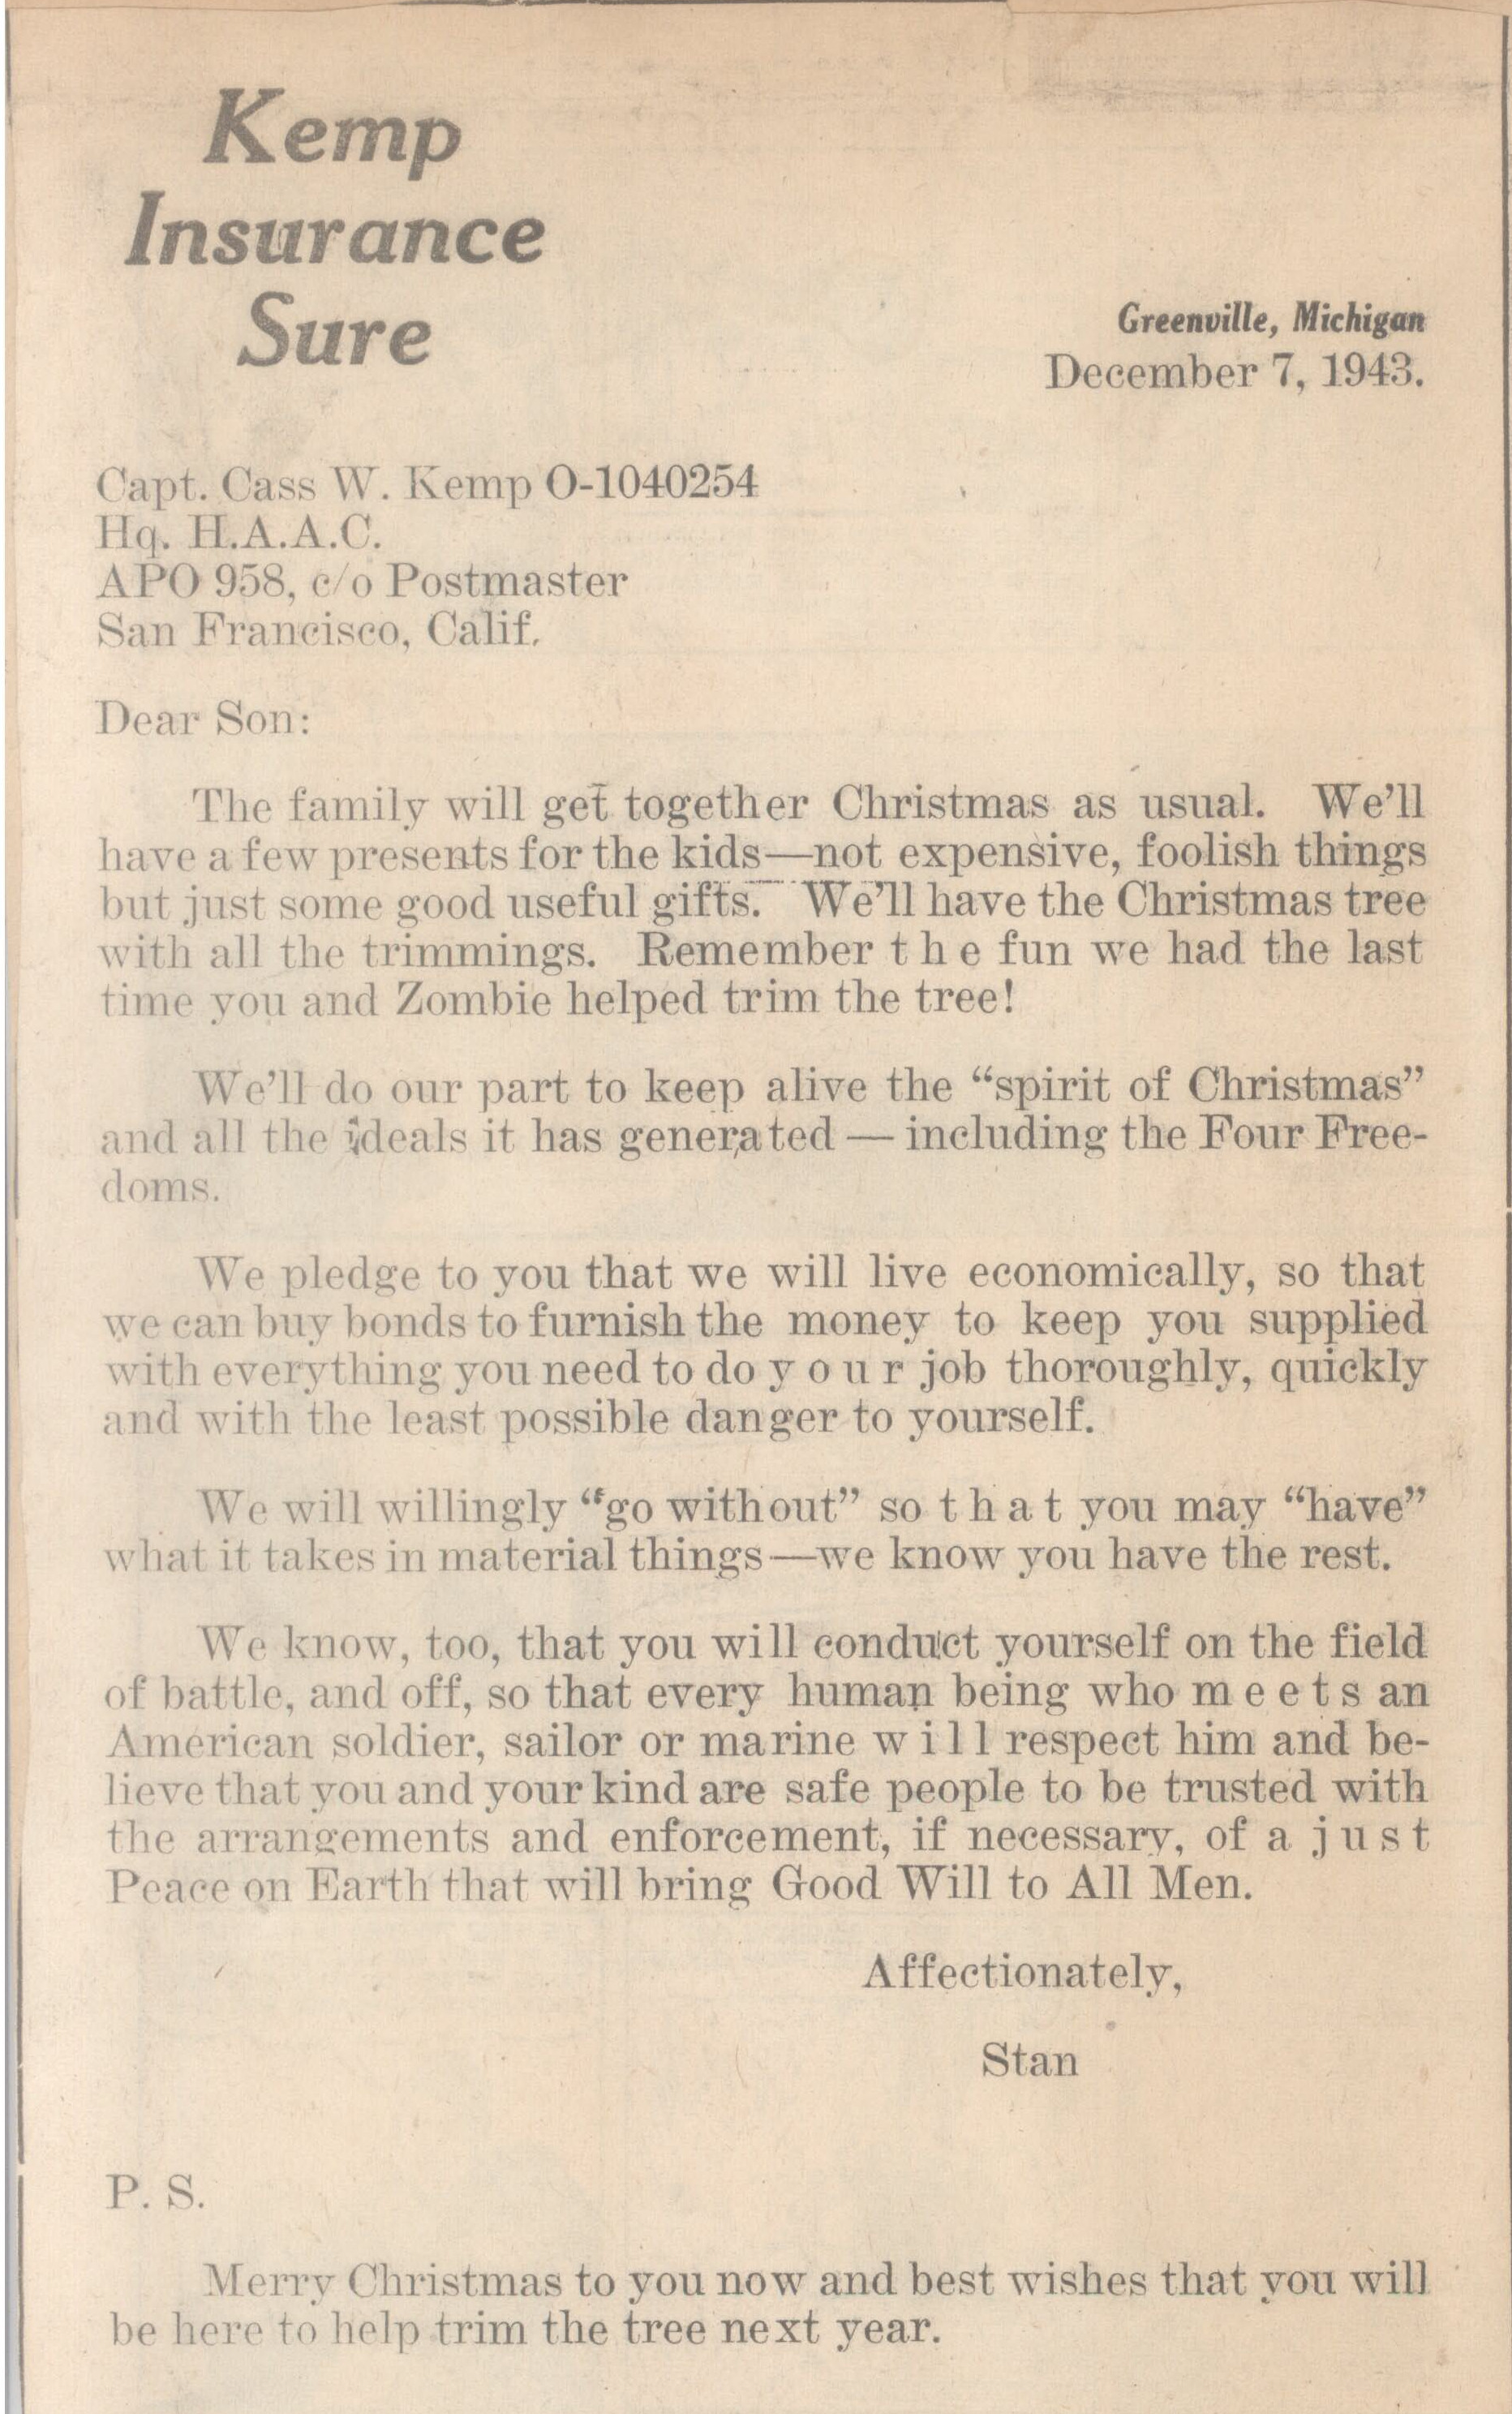 Letter from L. Stanley to Cass Kemp, Christmas 1943.